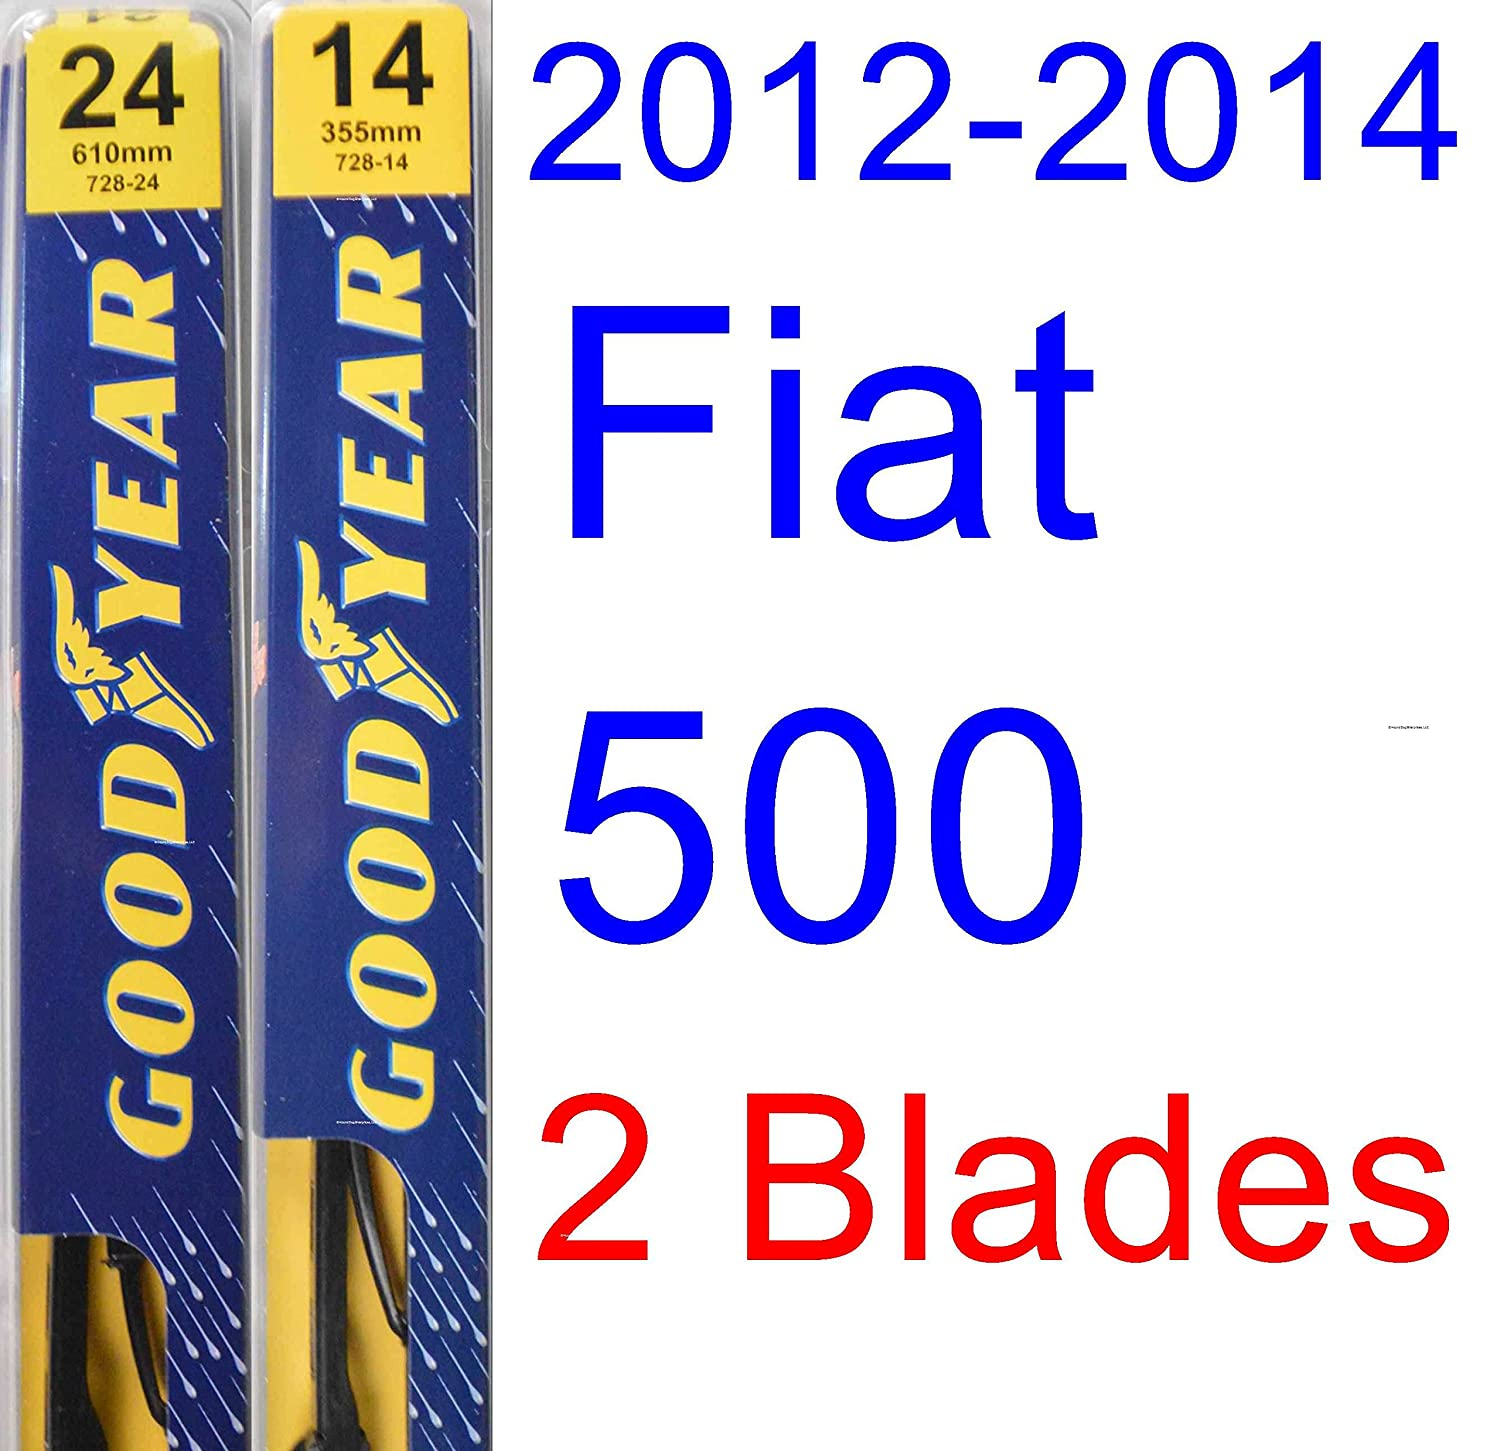 2012-2014 Fiat 500 Replacement Wiper Blade Set/Kit (Set of 2 Blades) (Goodyear Wiper Blades-Premium) (2013)